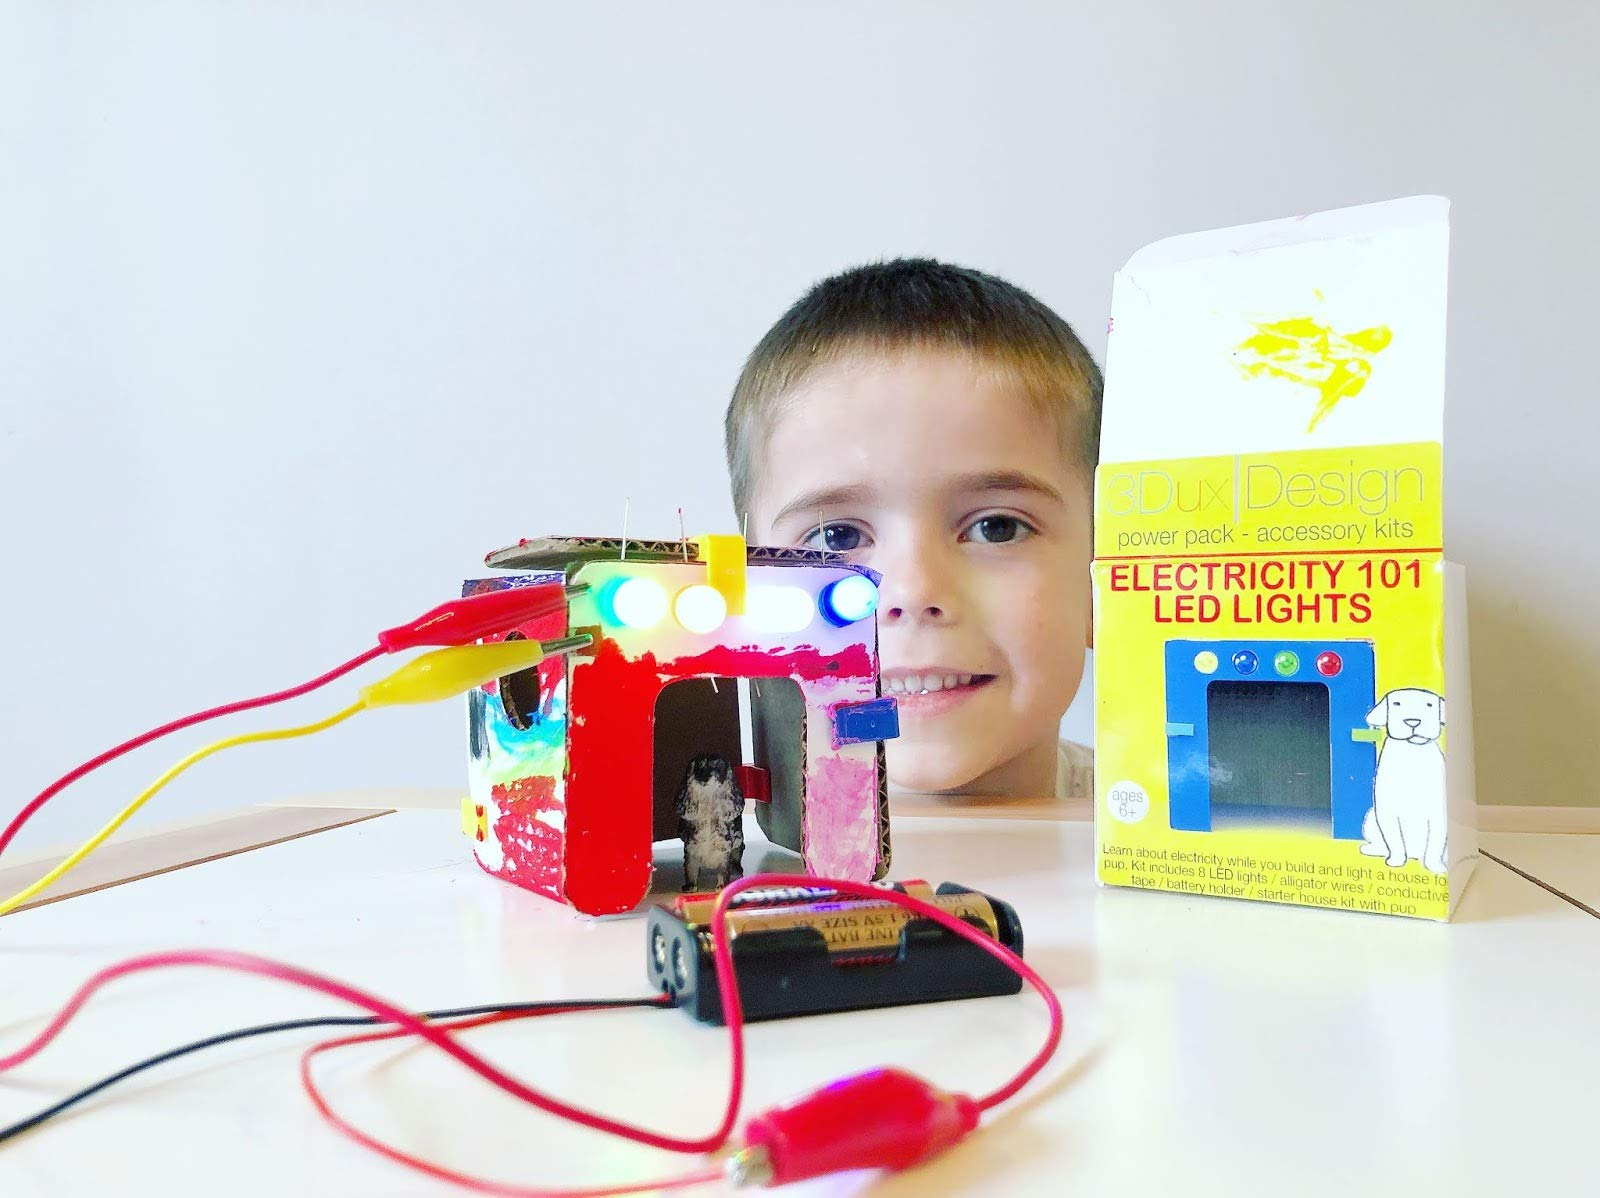 Cardboard Construction Kit with LED Lighting - Educational with Over 900 Pieces, Perfect for Learning STEM, STEAM, and Circuits in School and at Home by 3DuxDesign GOBOXPRO10